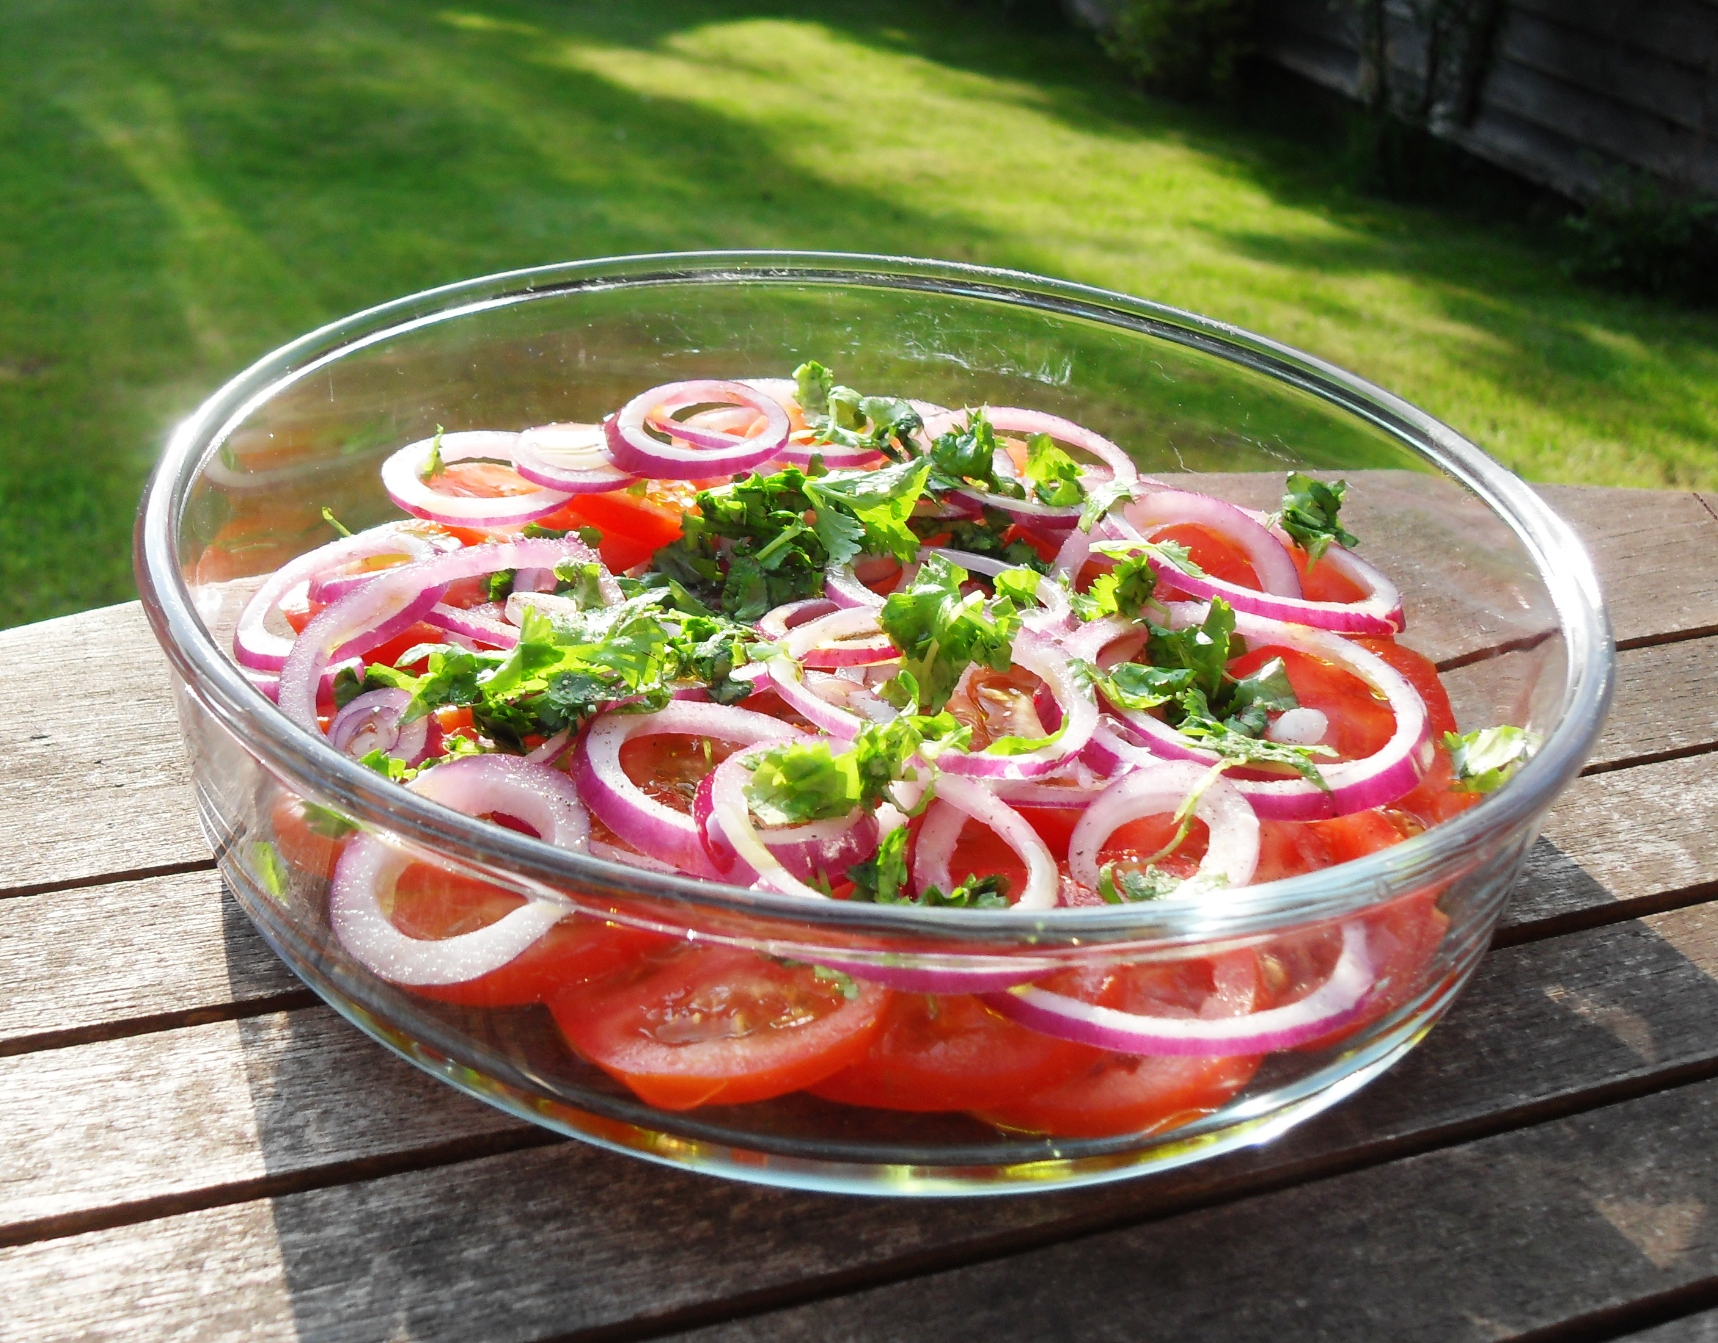 Tomato & Red Onion Salad with Coriander